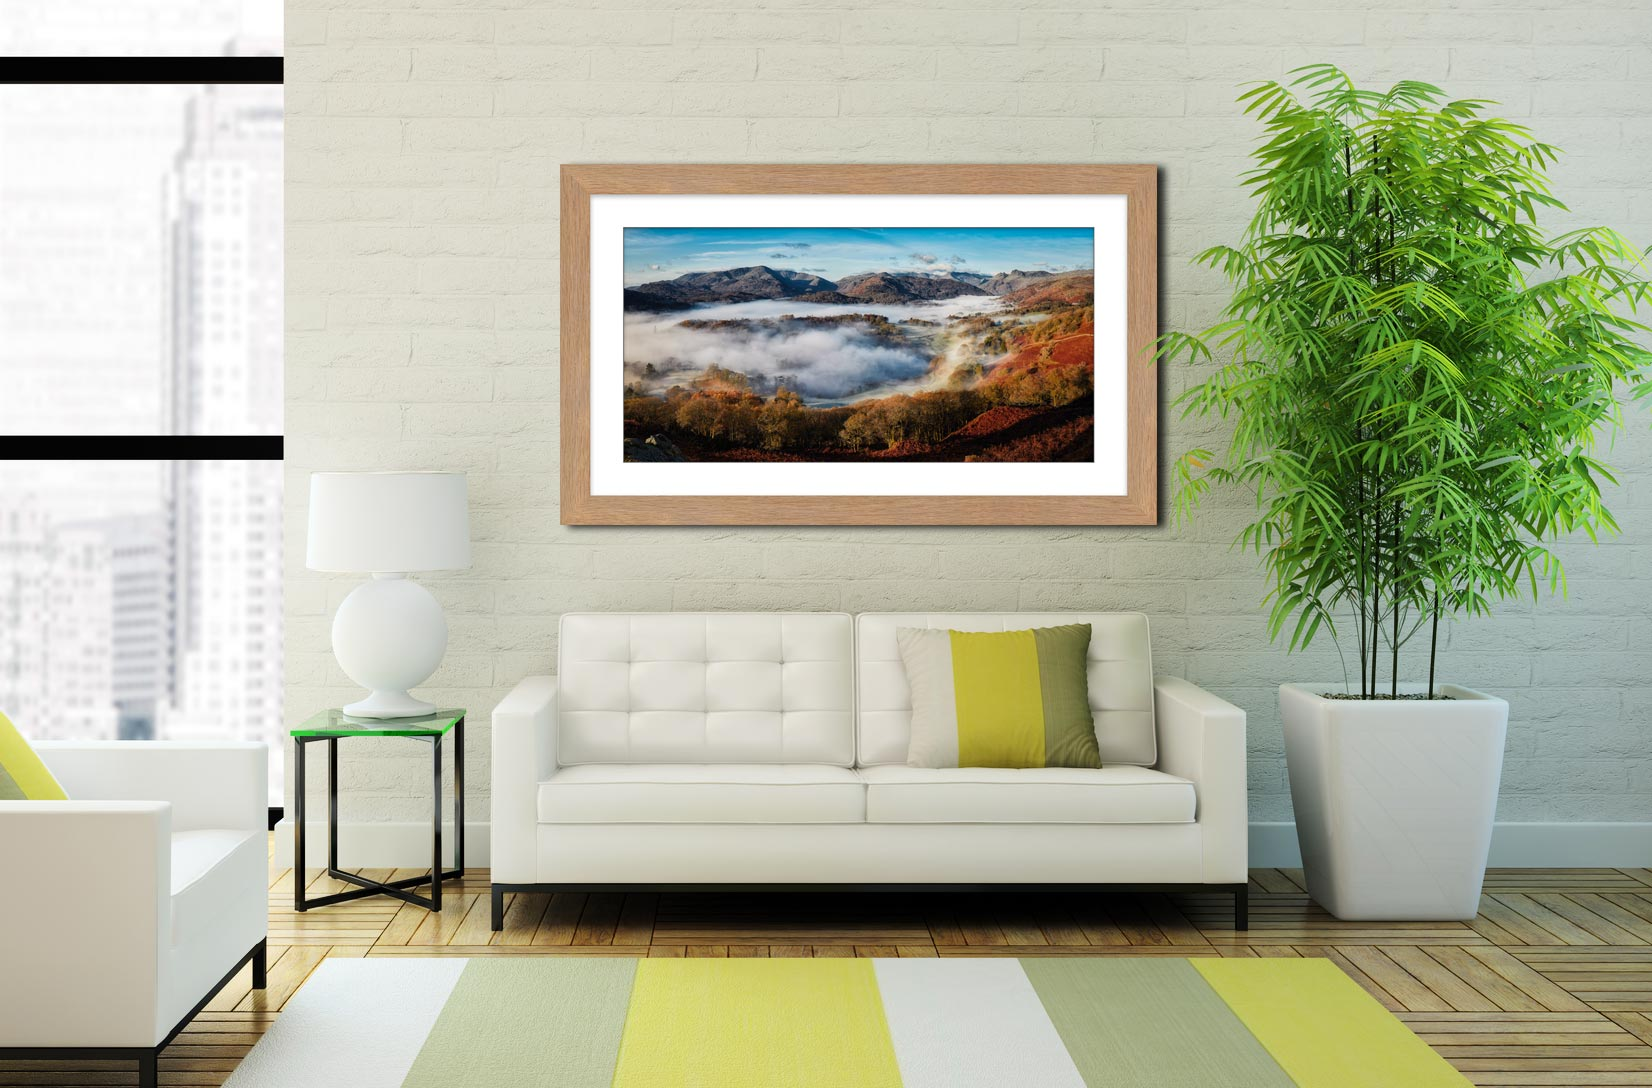 Great Langdale Misty Morning - Framed Print with Mount on Wall